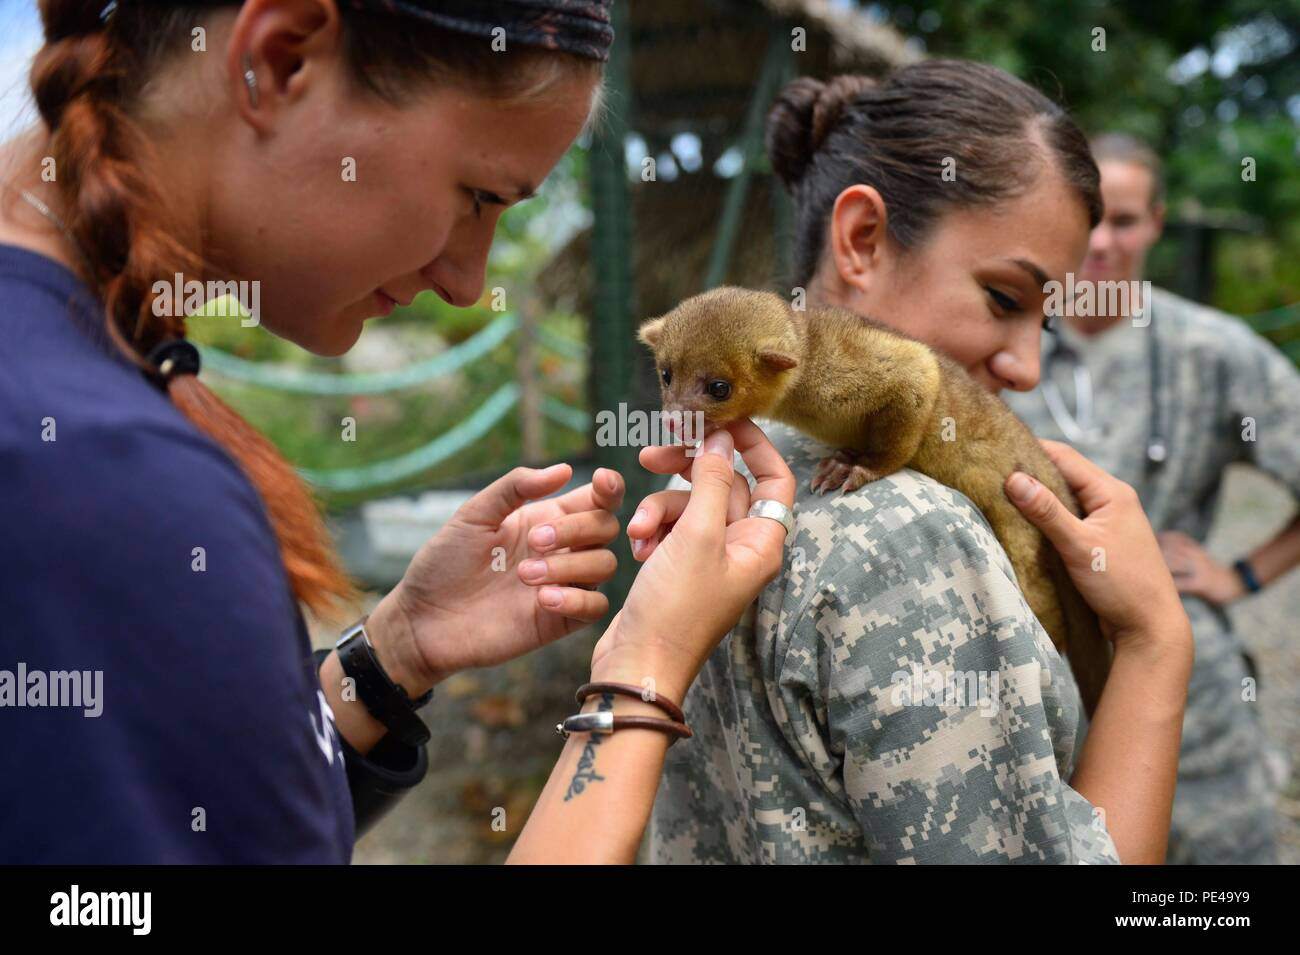 150904-N-AT101-406 SANTA FE COLON, Honduras (Sept. 4, 2015) A volunteer photographer from the non-governmental organization (NGO) World Vets, left, and Army Spc. Adrianna Maza, a native of San Diego and veterinary technician assigned to the Veterinary Treatment Facility on Joint Base Meyer-Henderson Hall, Va., interact with with a kinkachoo during a subject matter expert exchange  at the Campo Del Mar Park System in support of Continuing Promise 2015 (CP-15). World Vets volunteers are working alongside other NGOs and joint military members during CP-15. Continuing Promise is a U.S. Southern Co - Stock Image